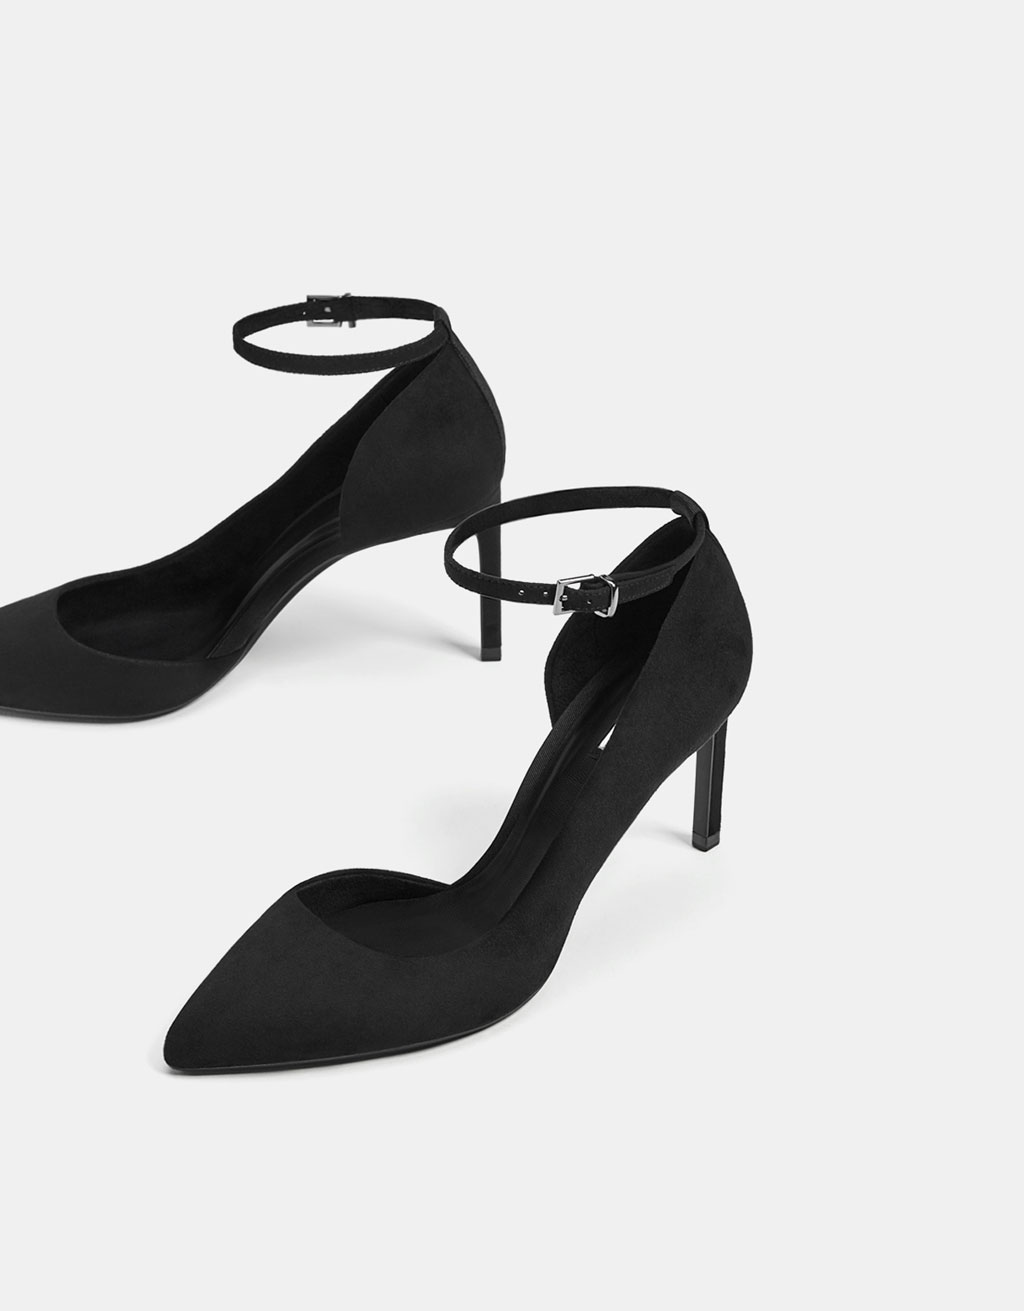 Asymmetric high heel shoes with ankle straps